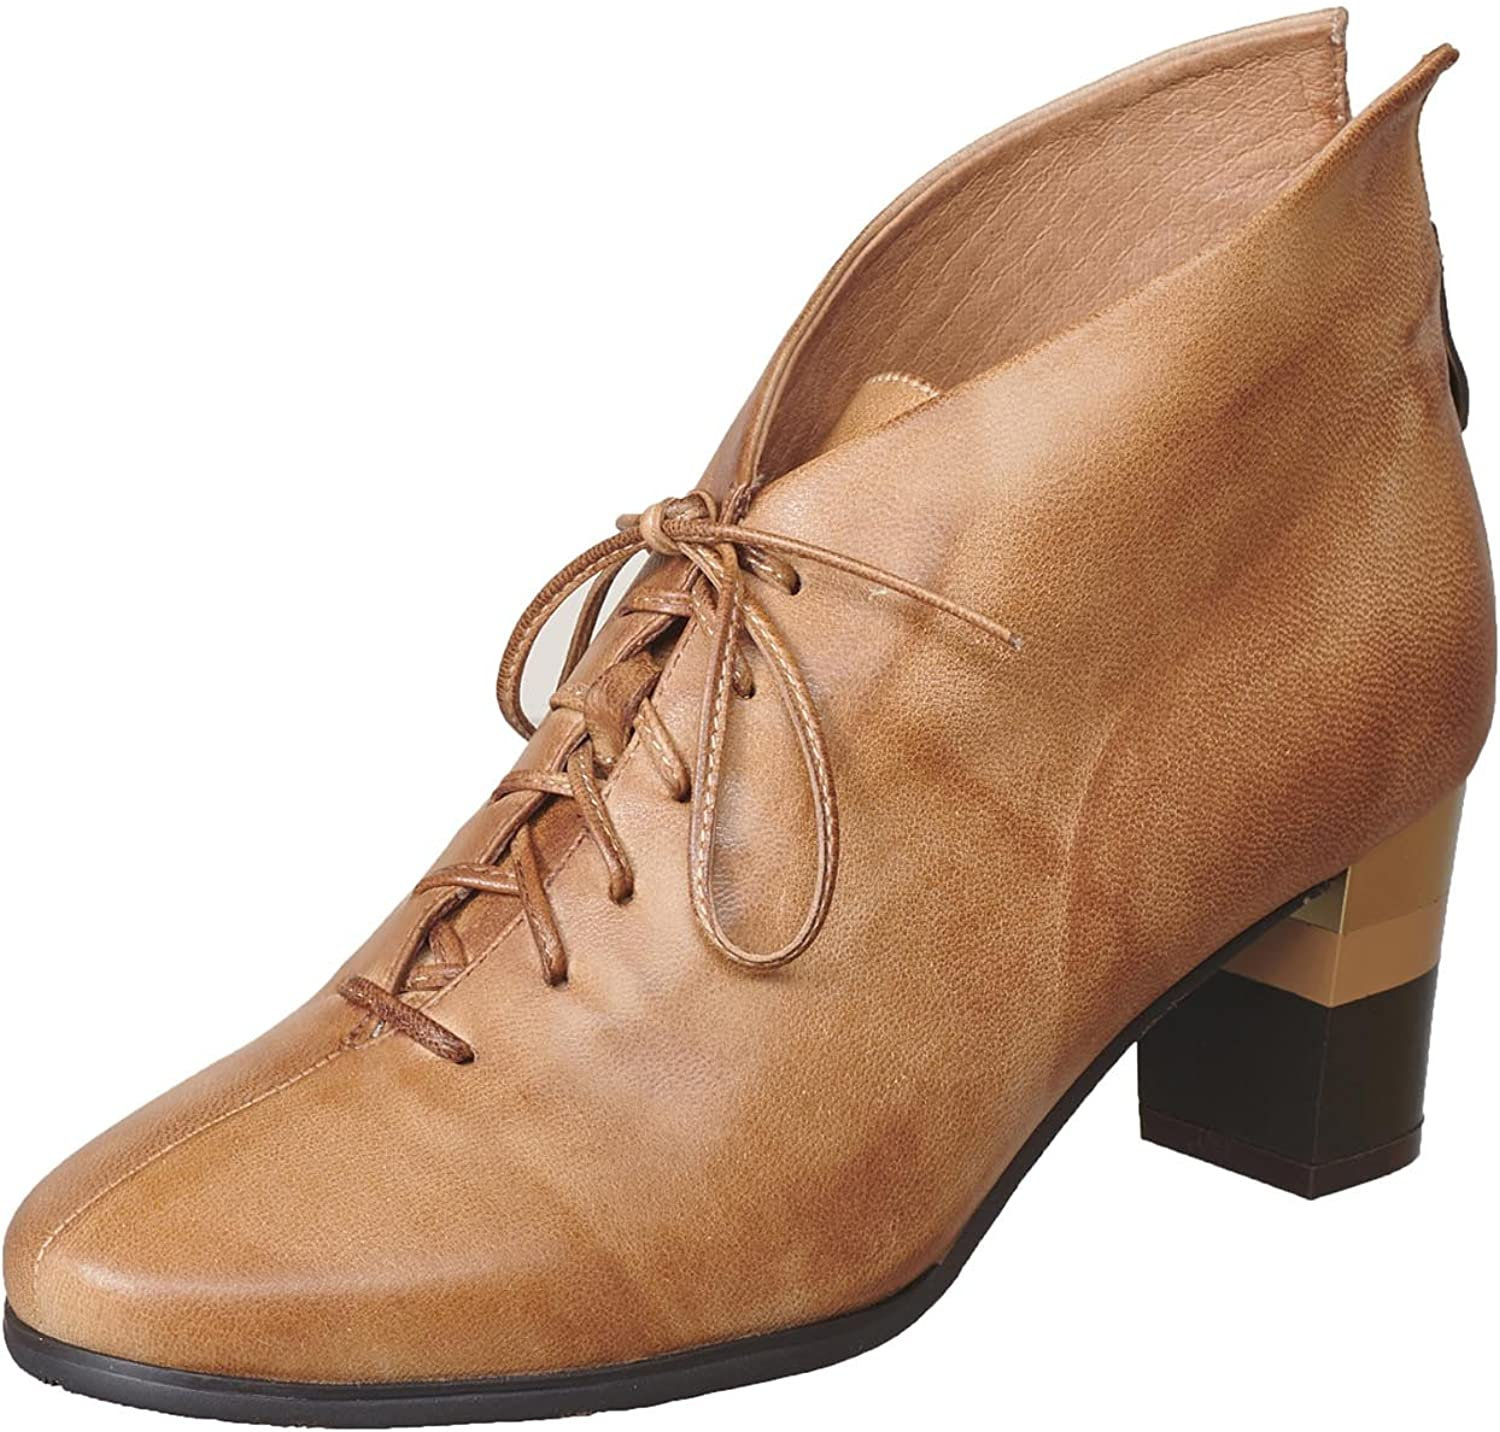 Antelope Women's 578 Leather Laceup Stripe Heel Bootie